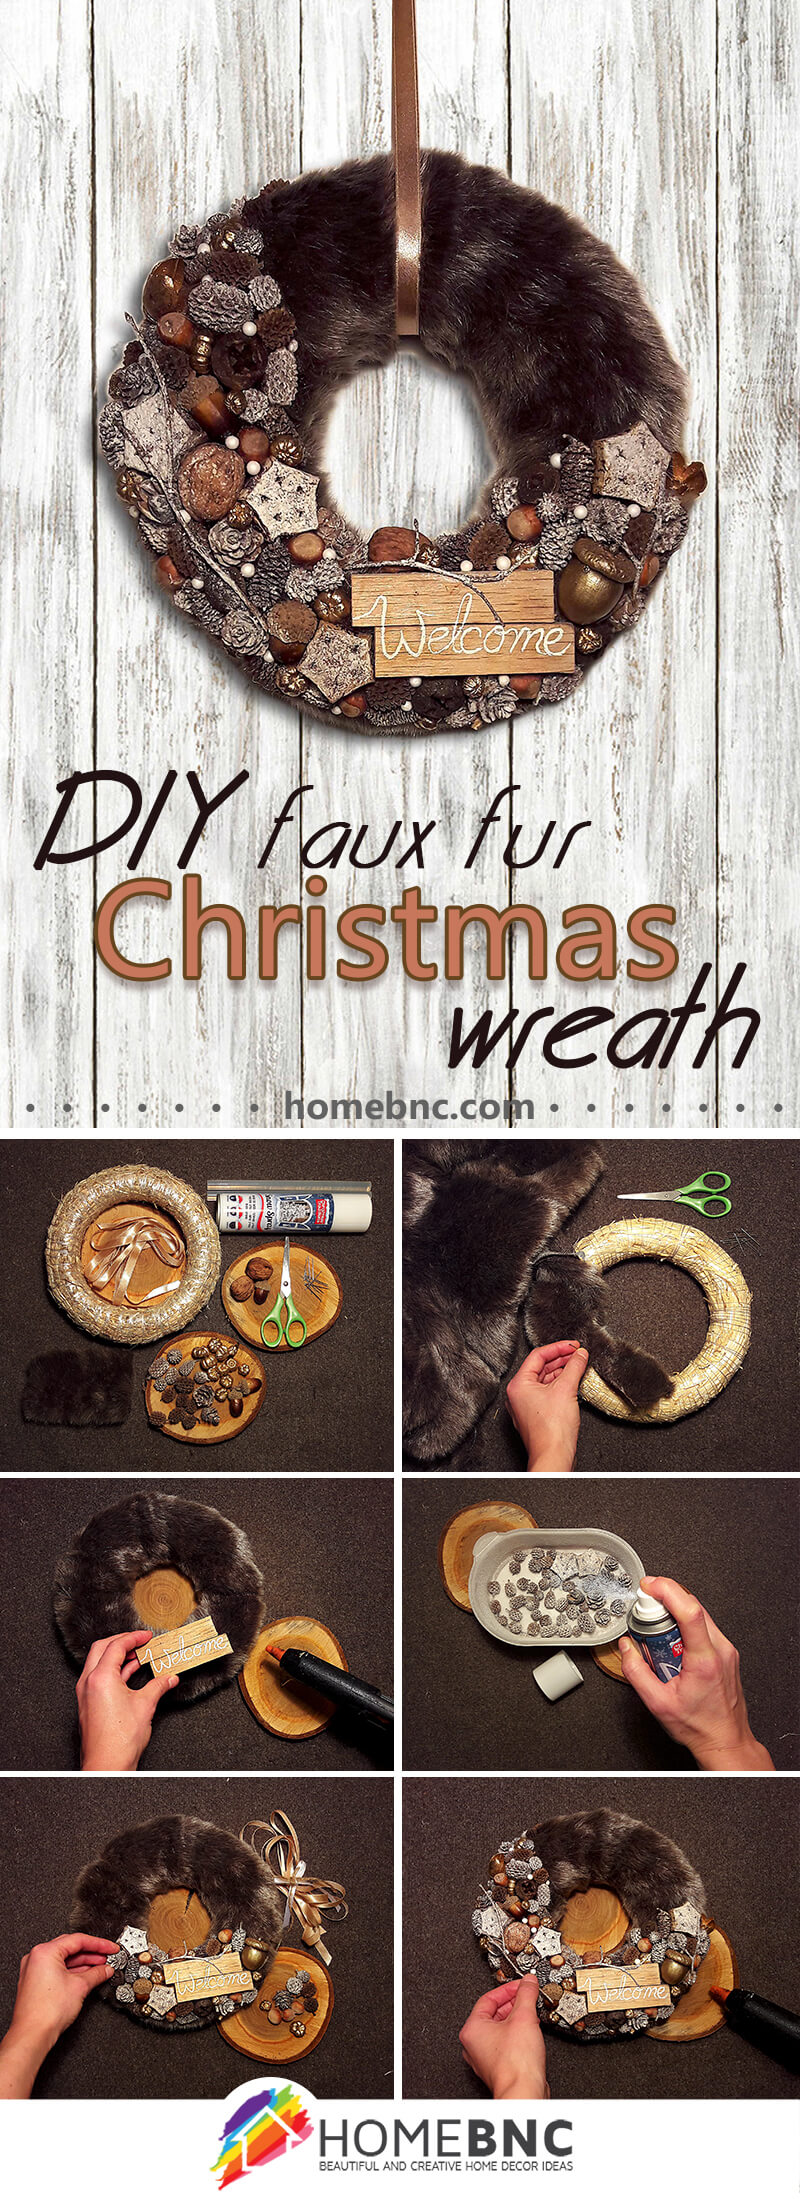 DIY Faux Fur Christmas Wreath